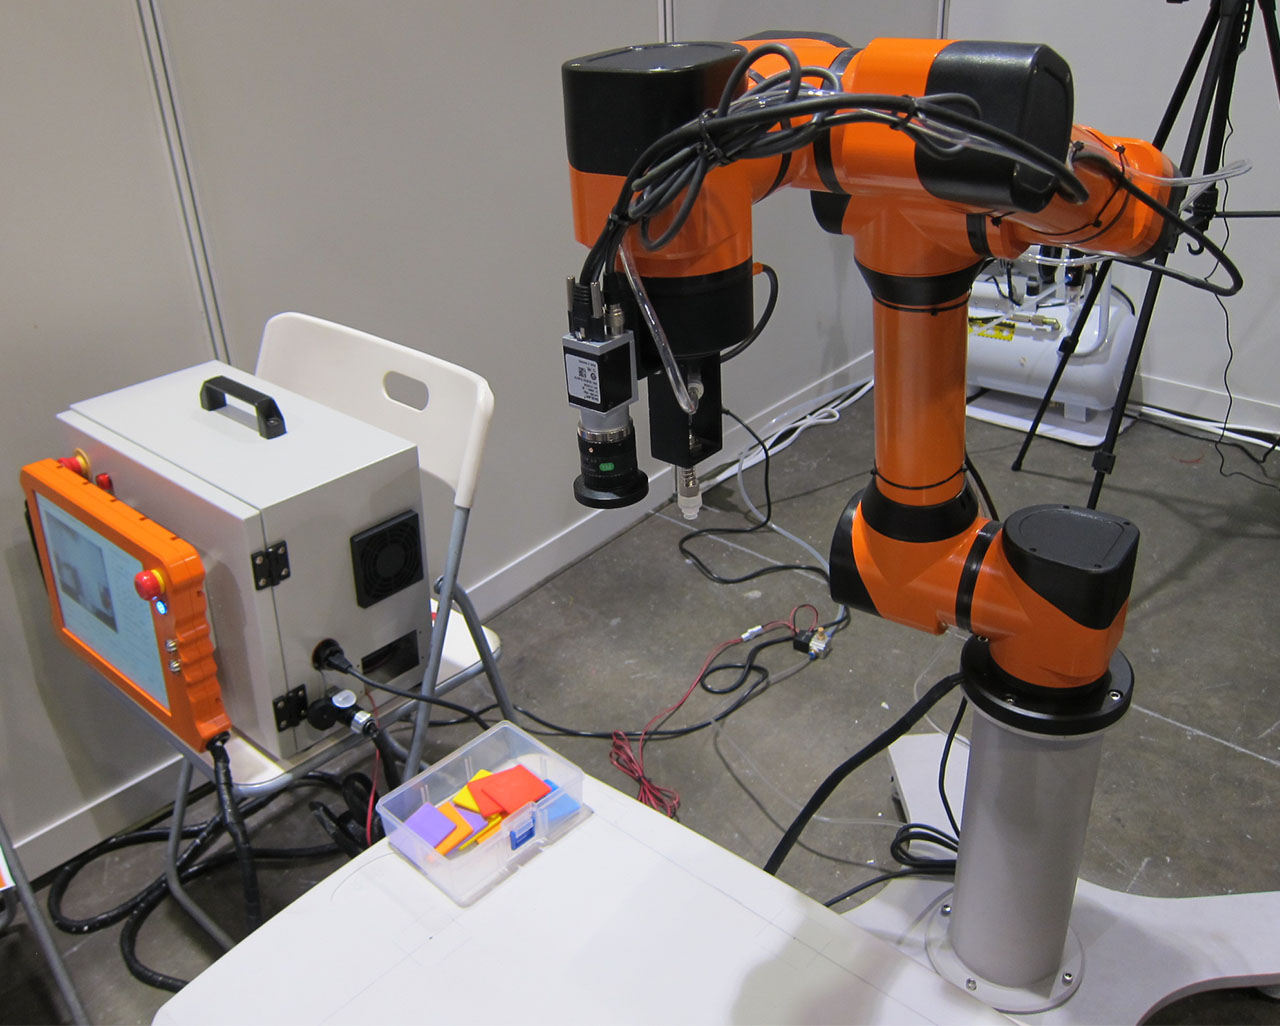 Smokie Robotics' OUR-1 low-cost industrial robot